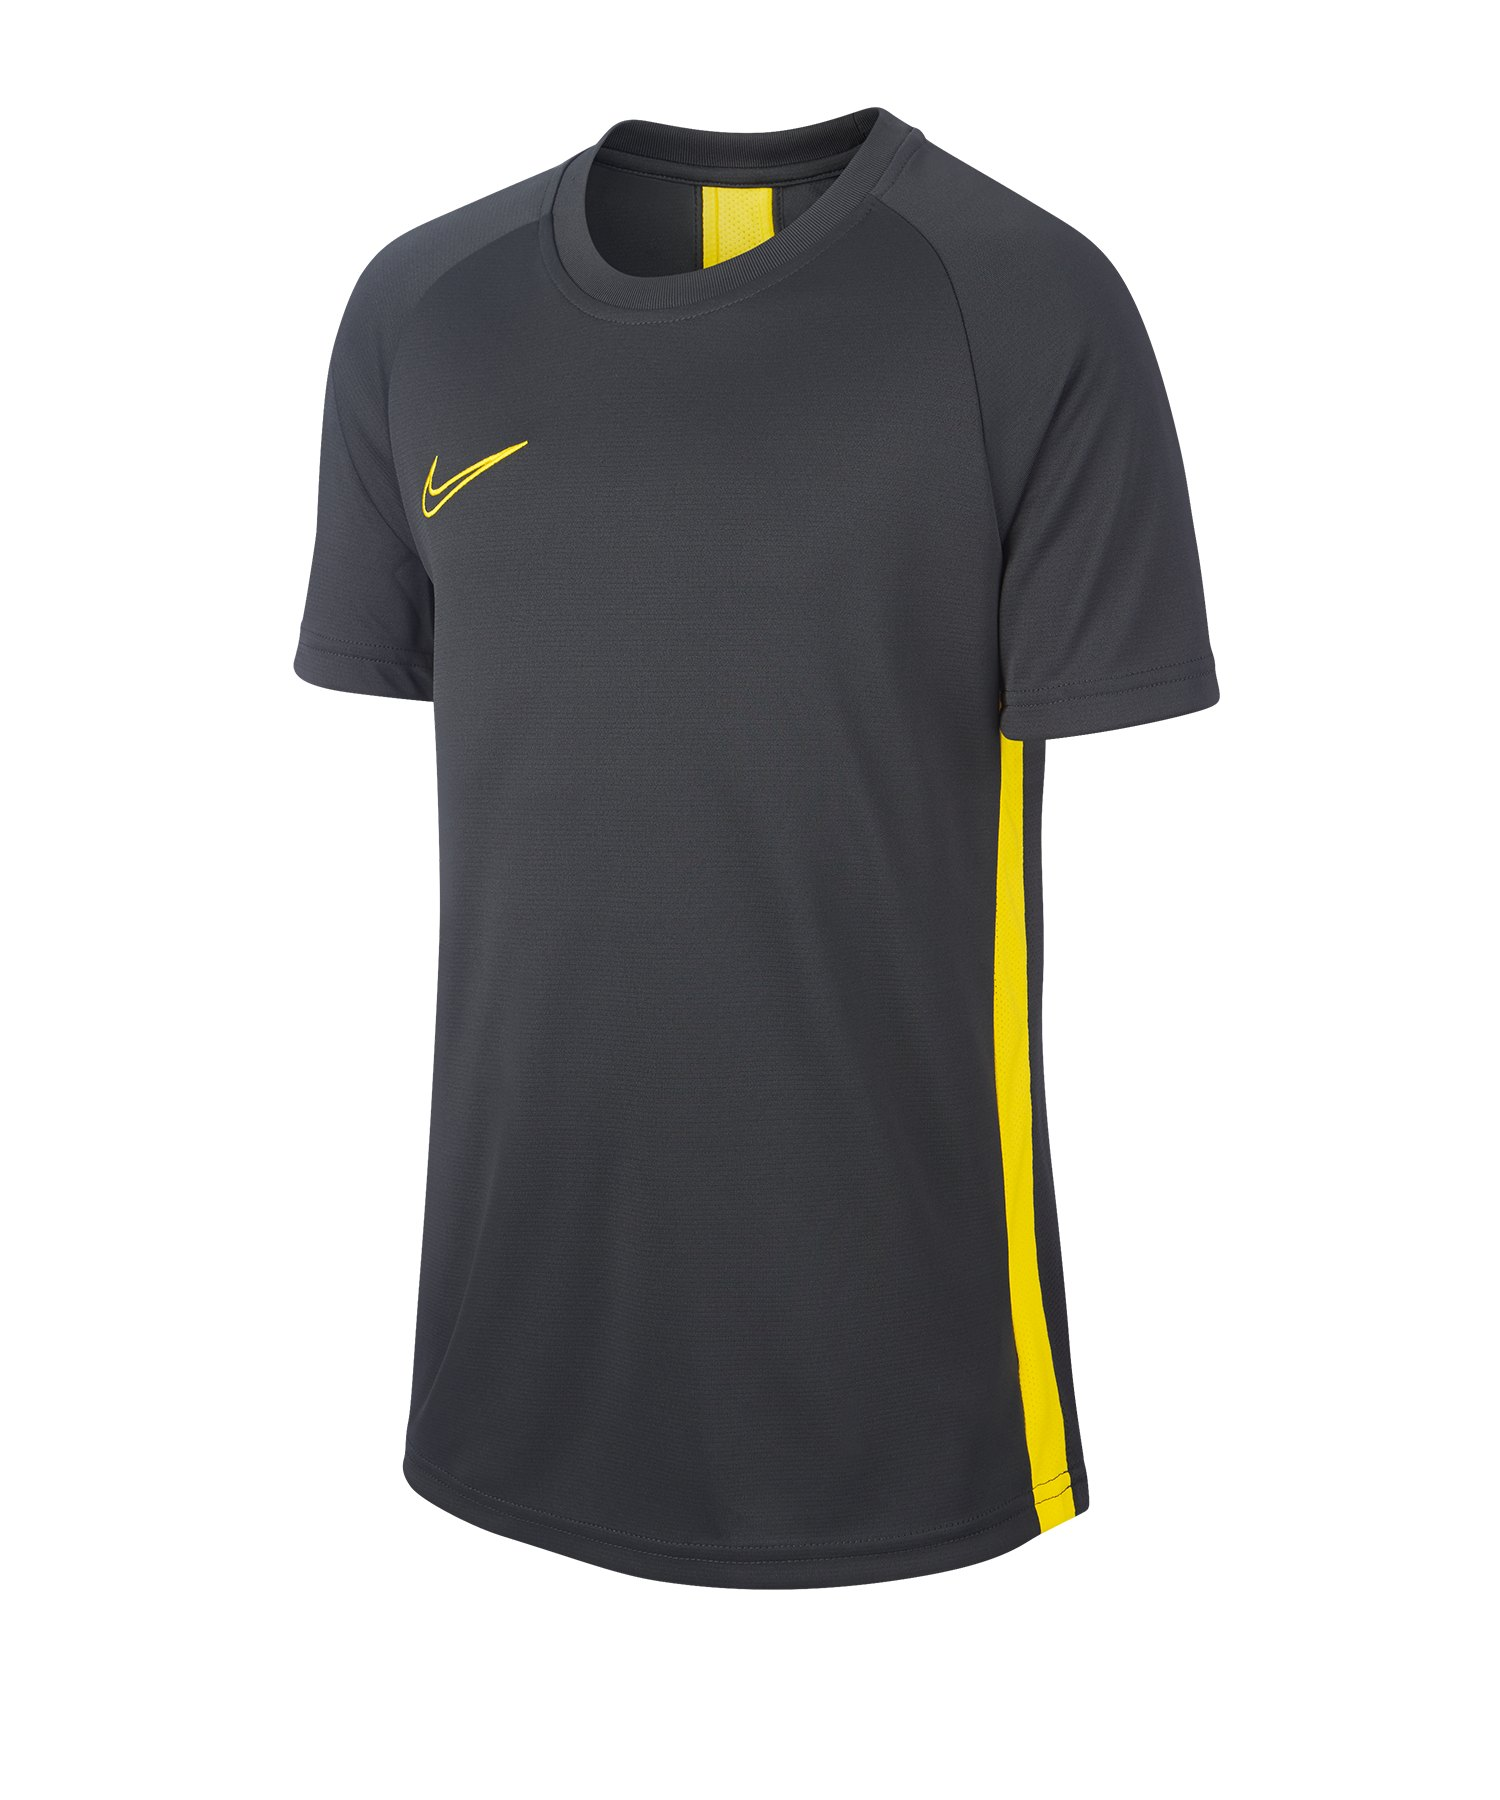 Nike Academy Dri-FIT Top T-Shirt Kids Grau F060 - grau